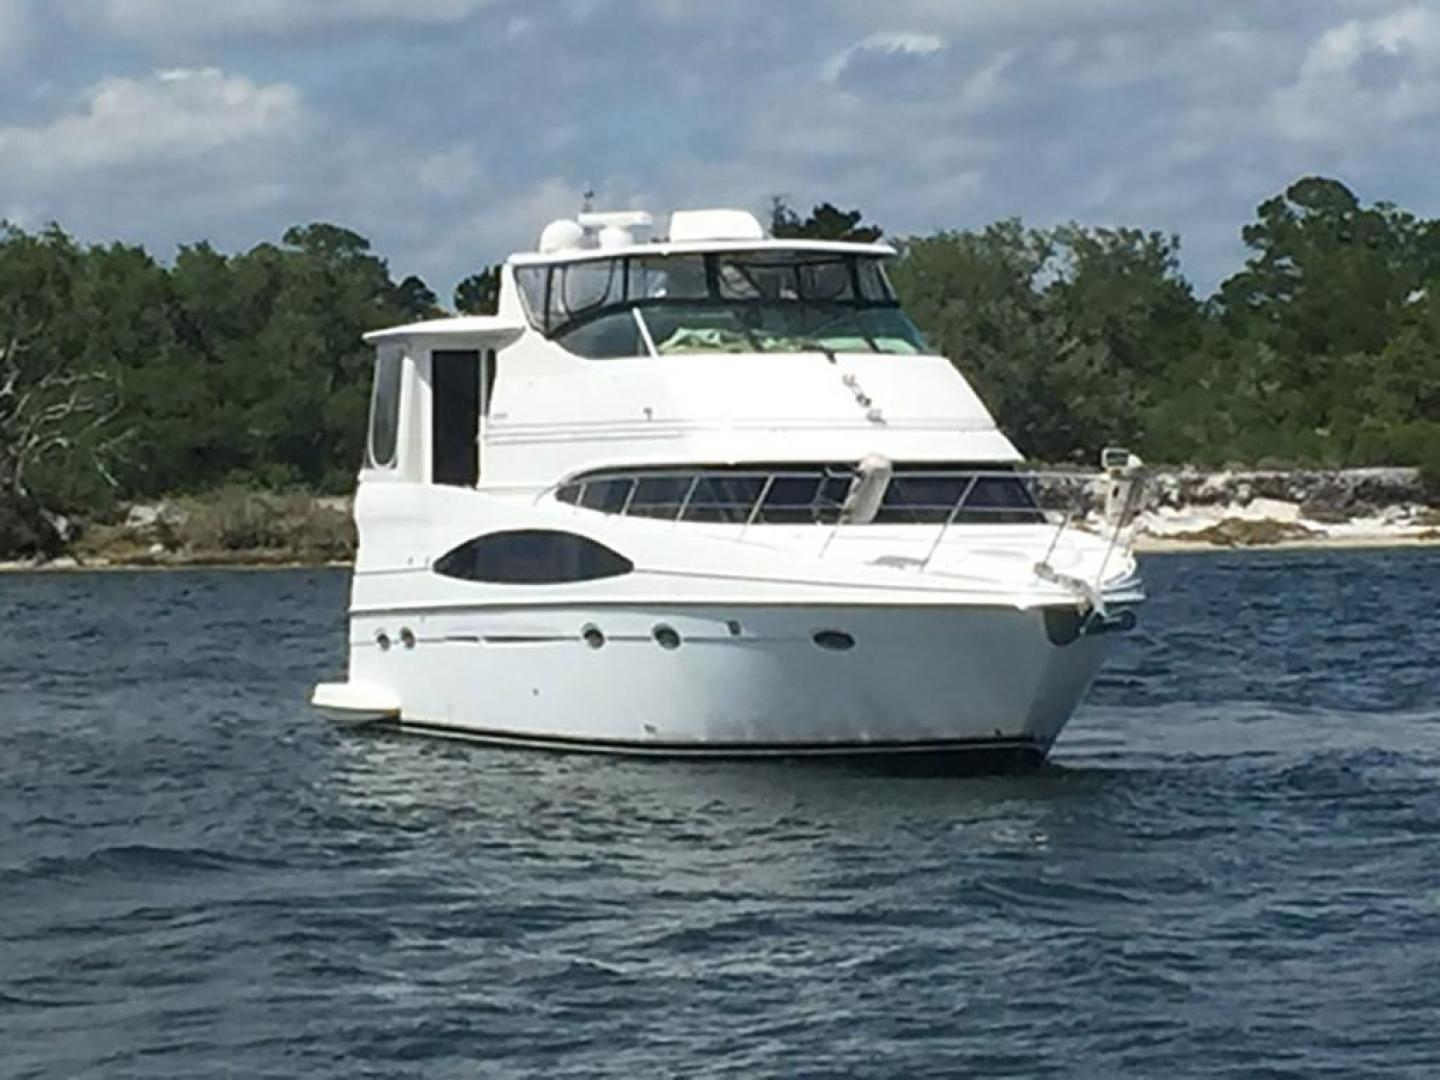 Carver-466 Motor Yacht 2001-Rollin in the Tides Pensacola-Florida-United States-Starboard Bow View-377504 | Thumbnail